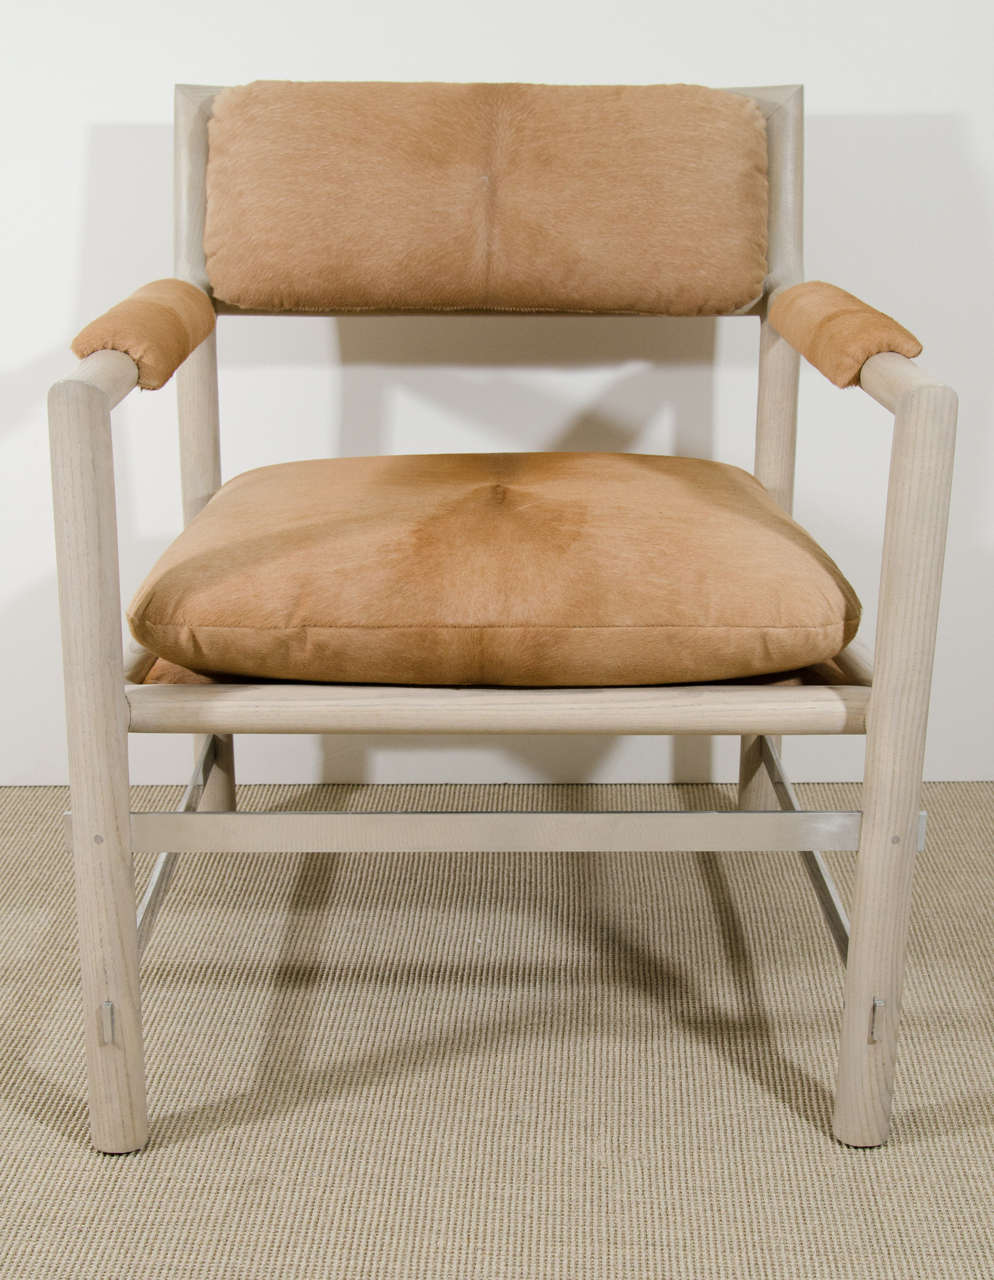 Pair of Edward Wormley for Dunbar Chairs in Cowhide, circa 1960, USA 2